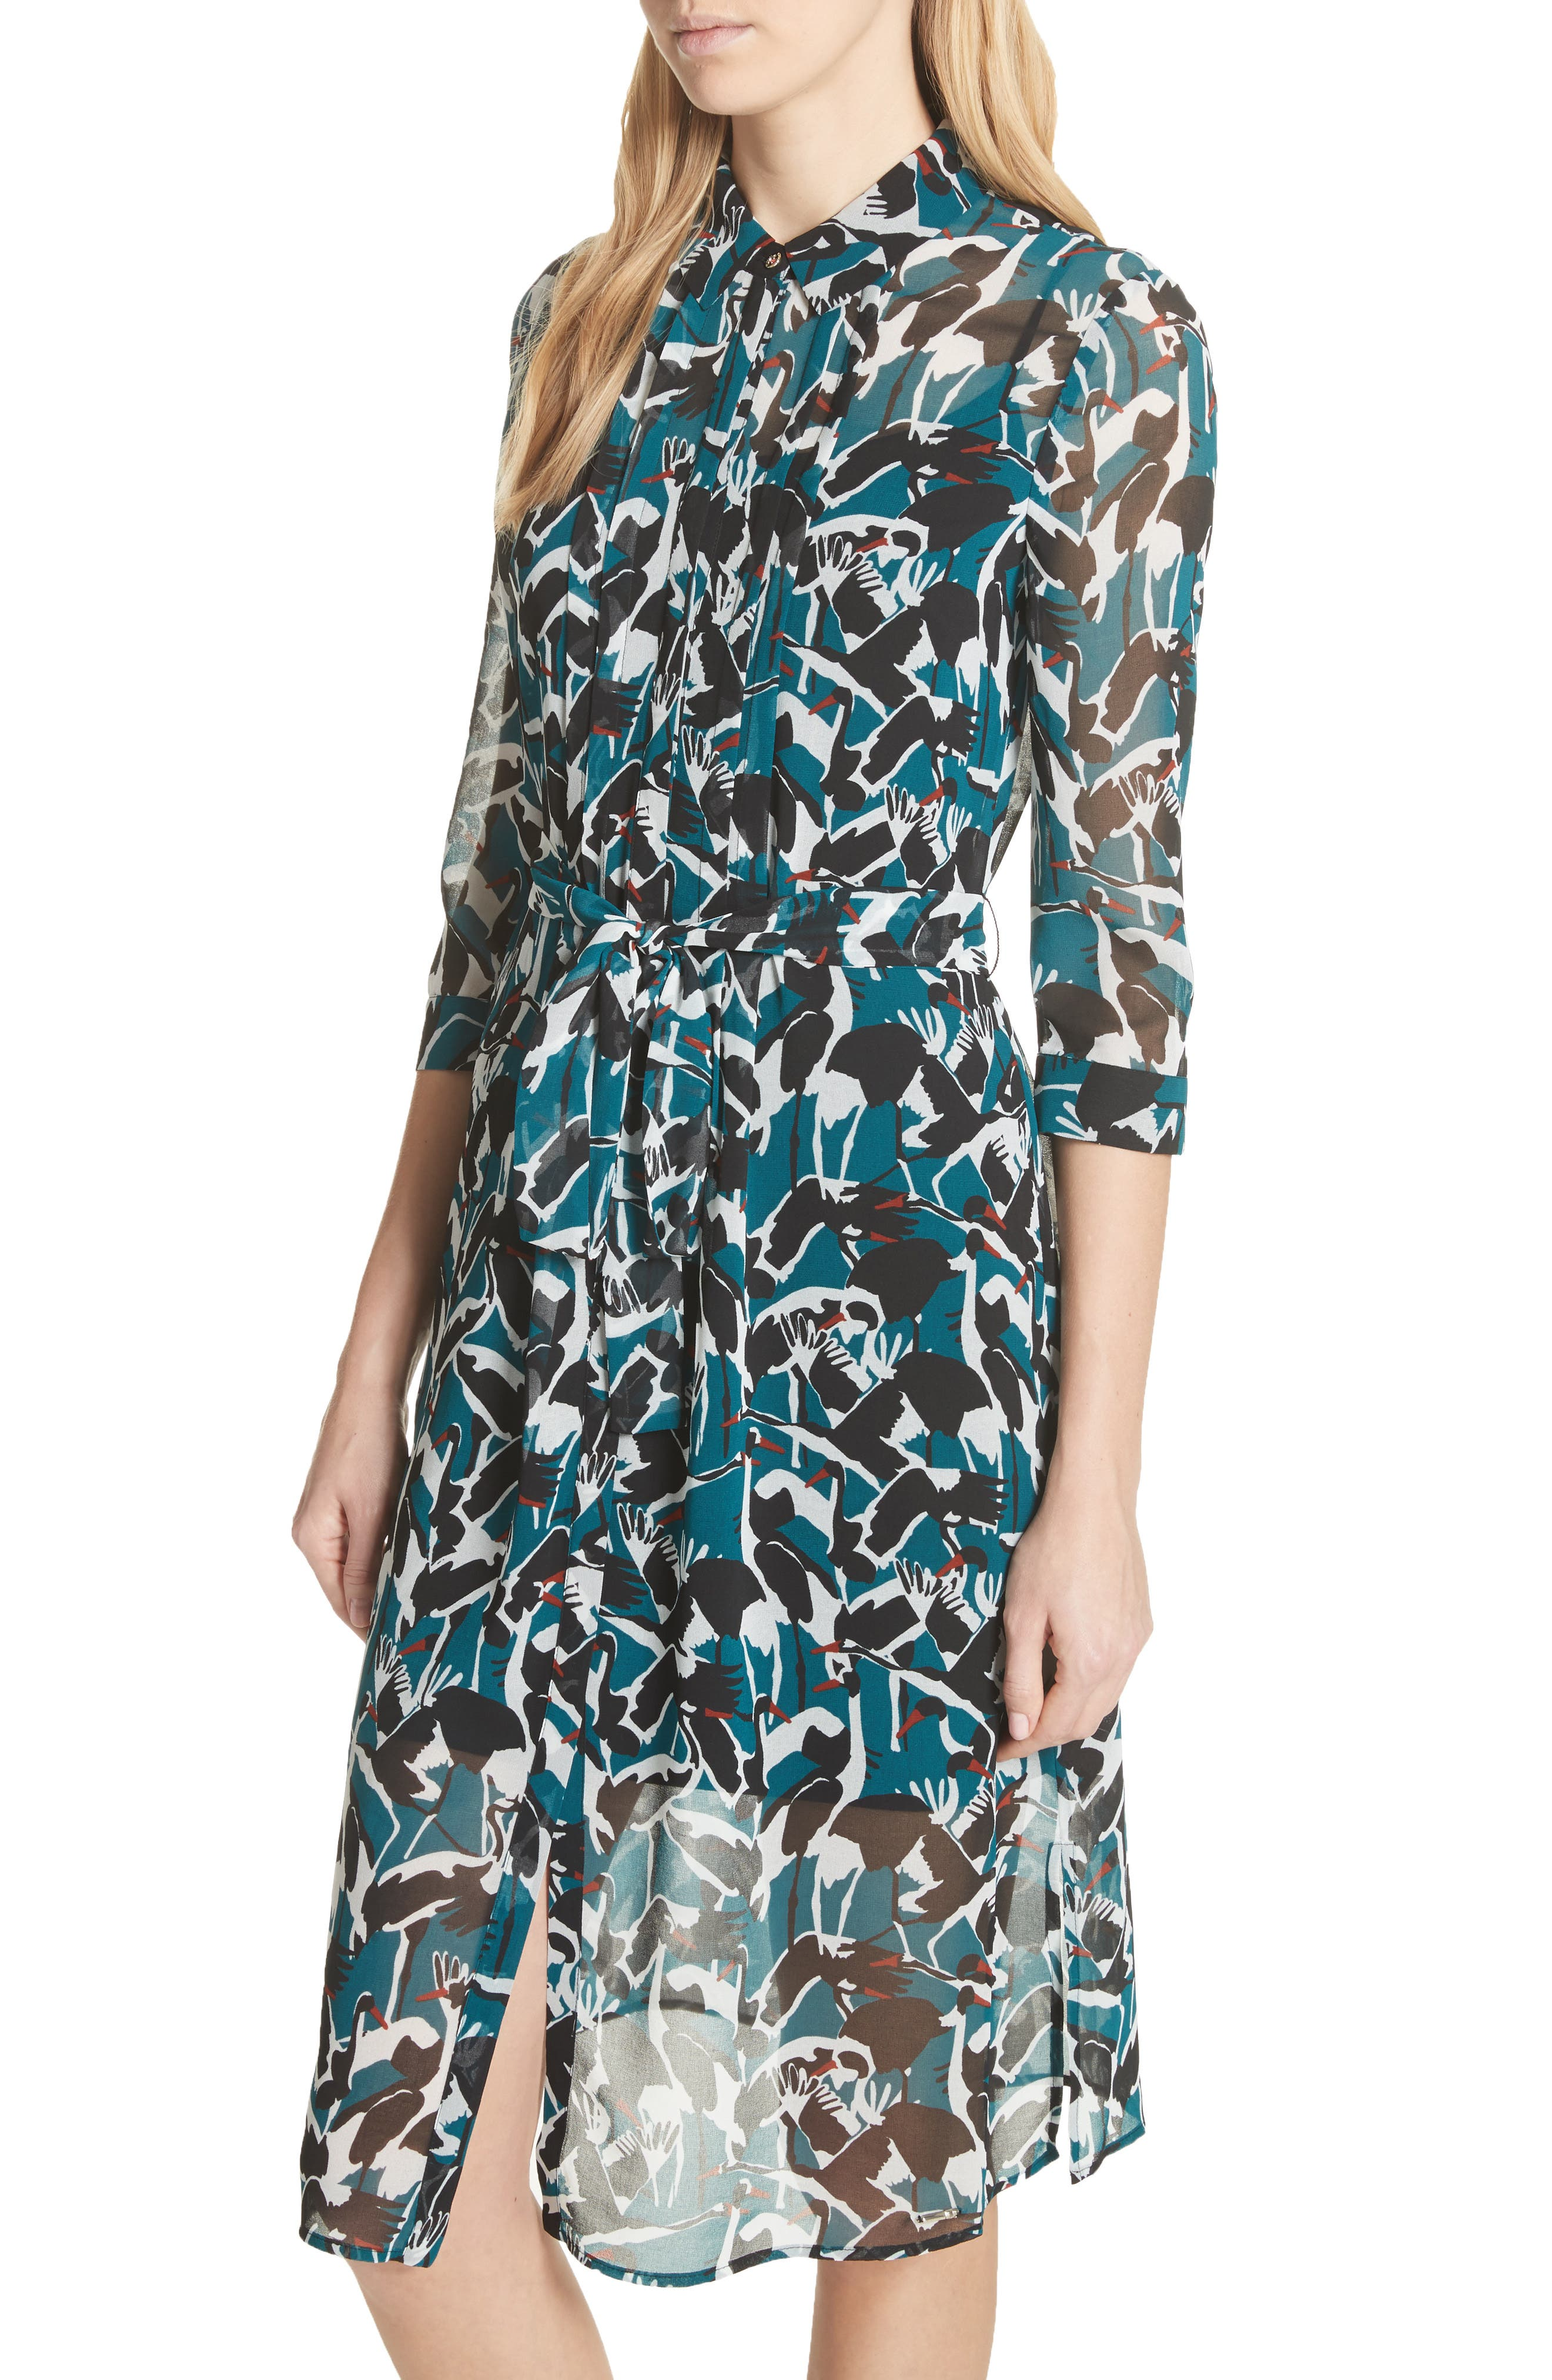 Colour by Numbers Crane Shirtdress,                             Alternate thumbnail 4, color,                             440